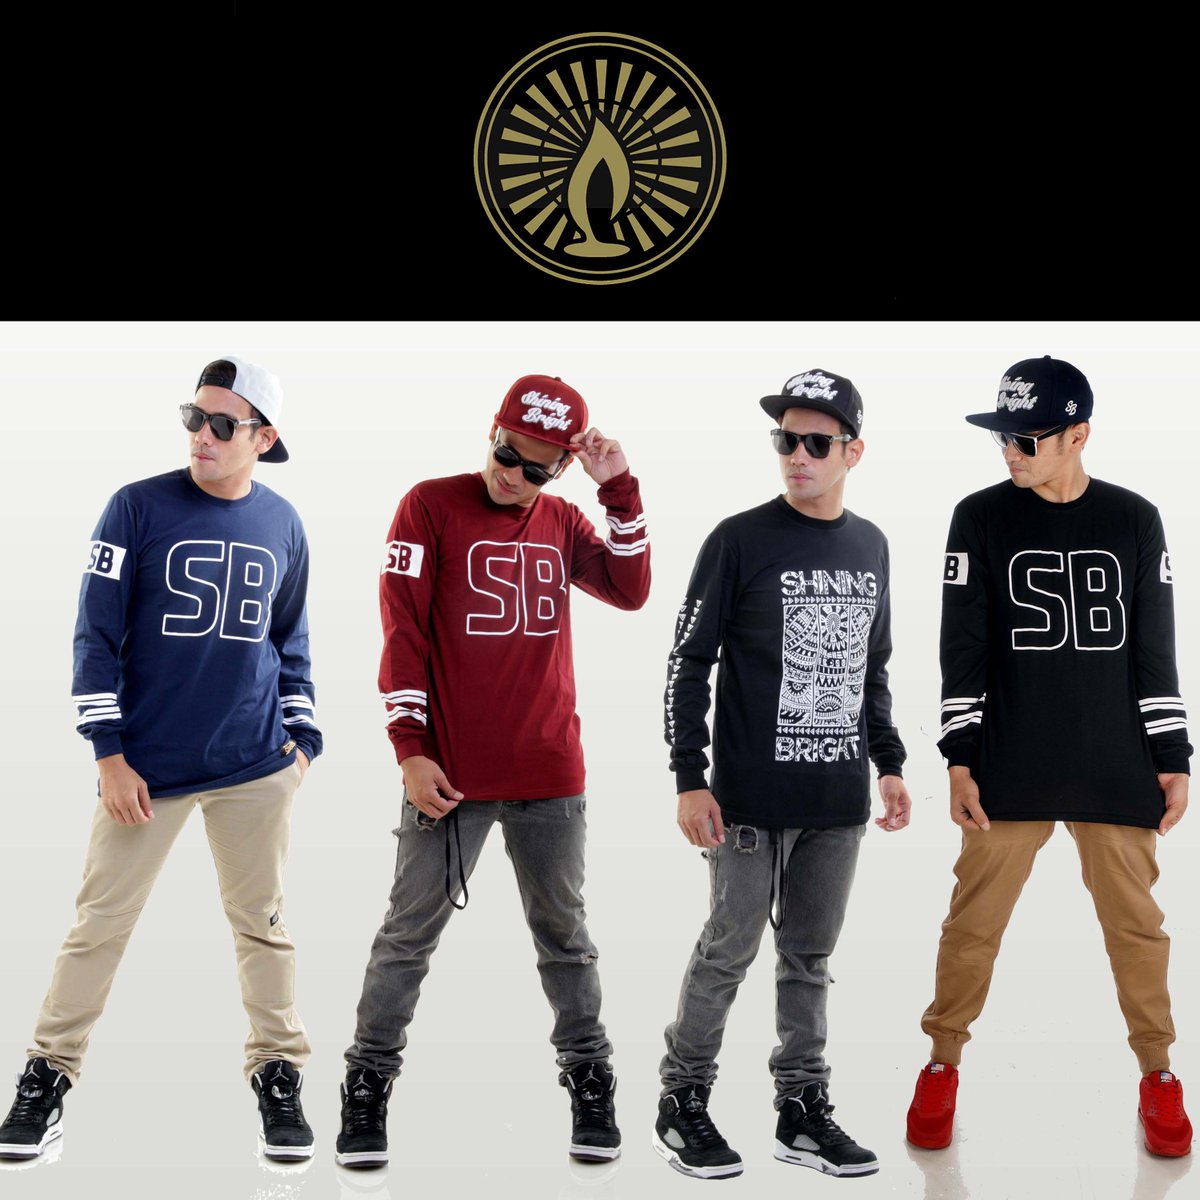 """@tarrabudiman: Just Restocked Long Sleeve T-Shirt // Available now at @ShiningBrightCo & @ShiningBrightTM http://t.co/Jt7drZTHae"""